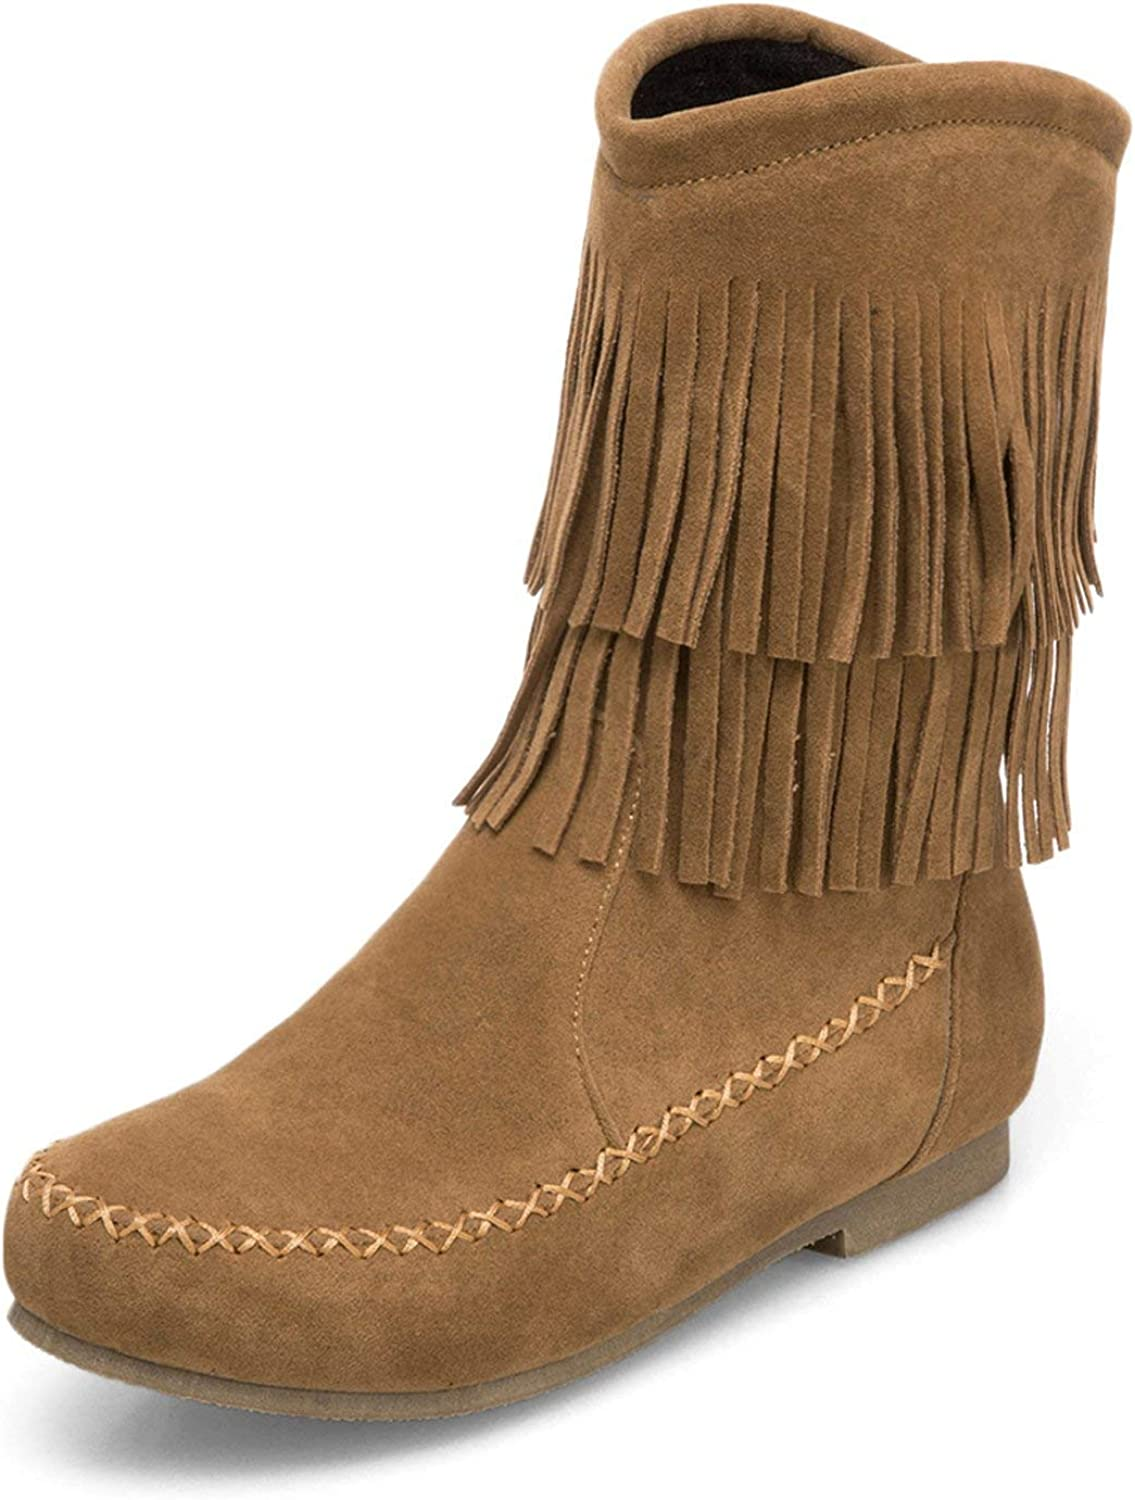 KAOKAOO Women's Moccasin Boots Mid Calf Flat Pull on Faux Suede 2-Layer Fringe Winter shoes